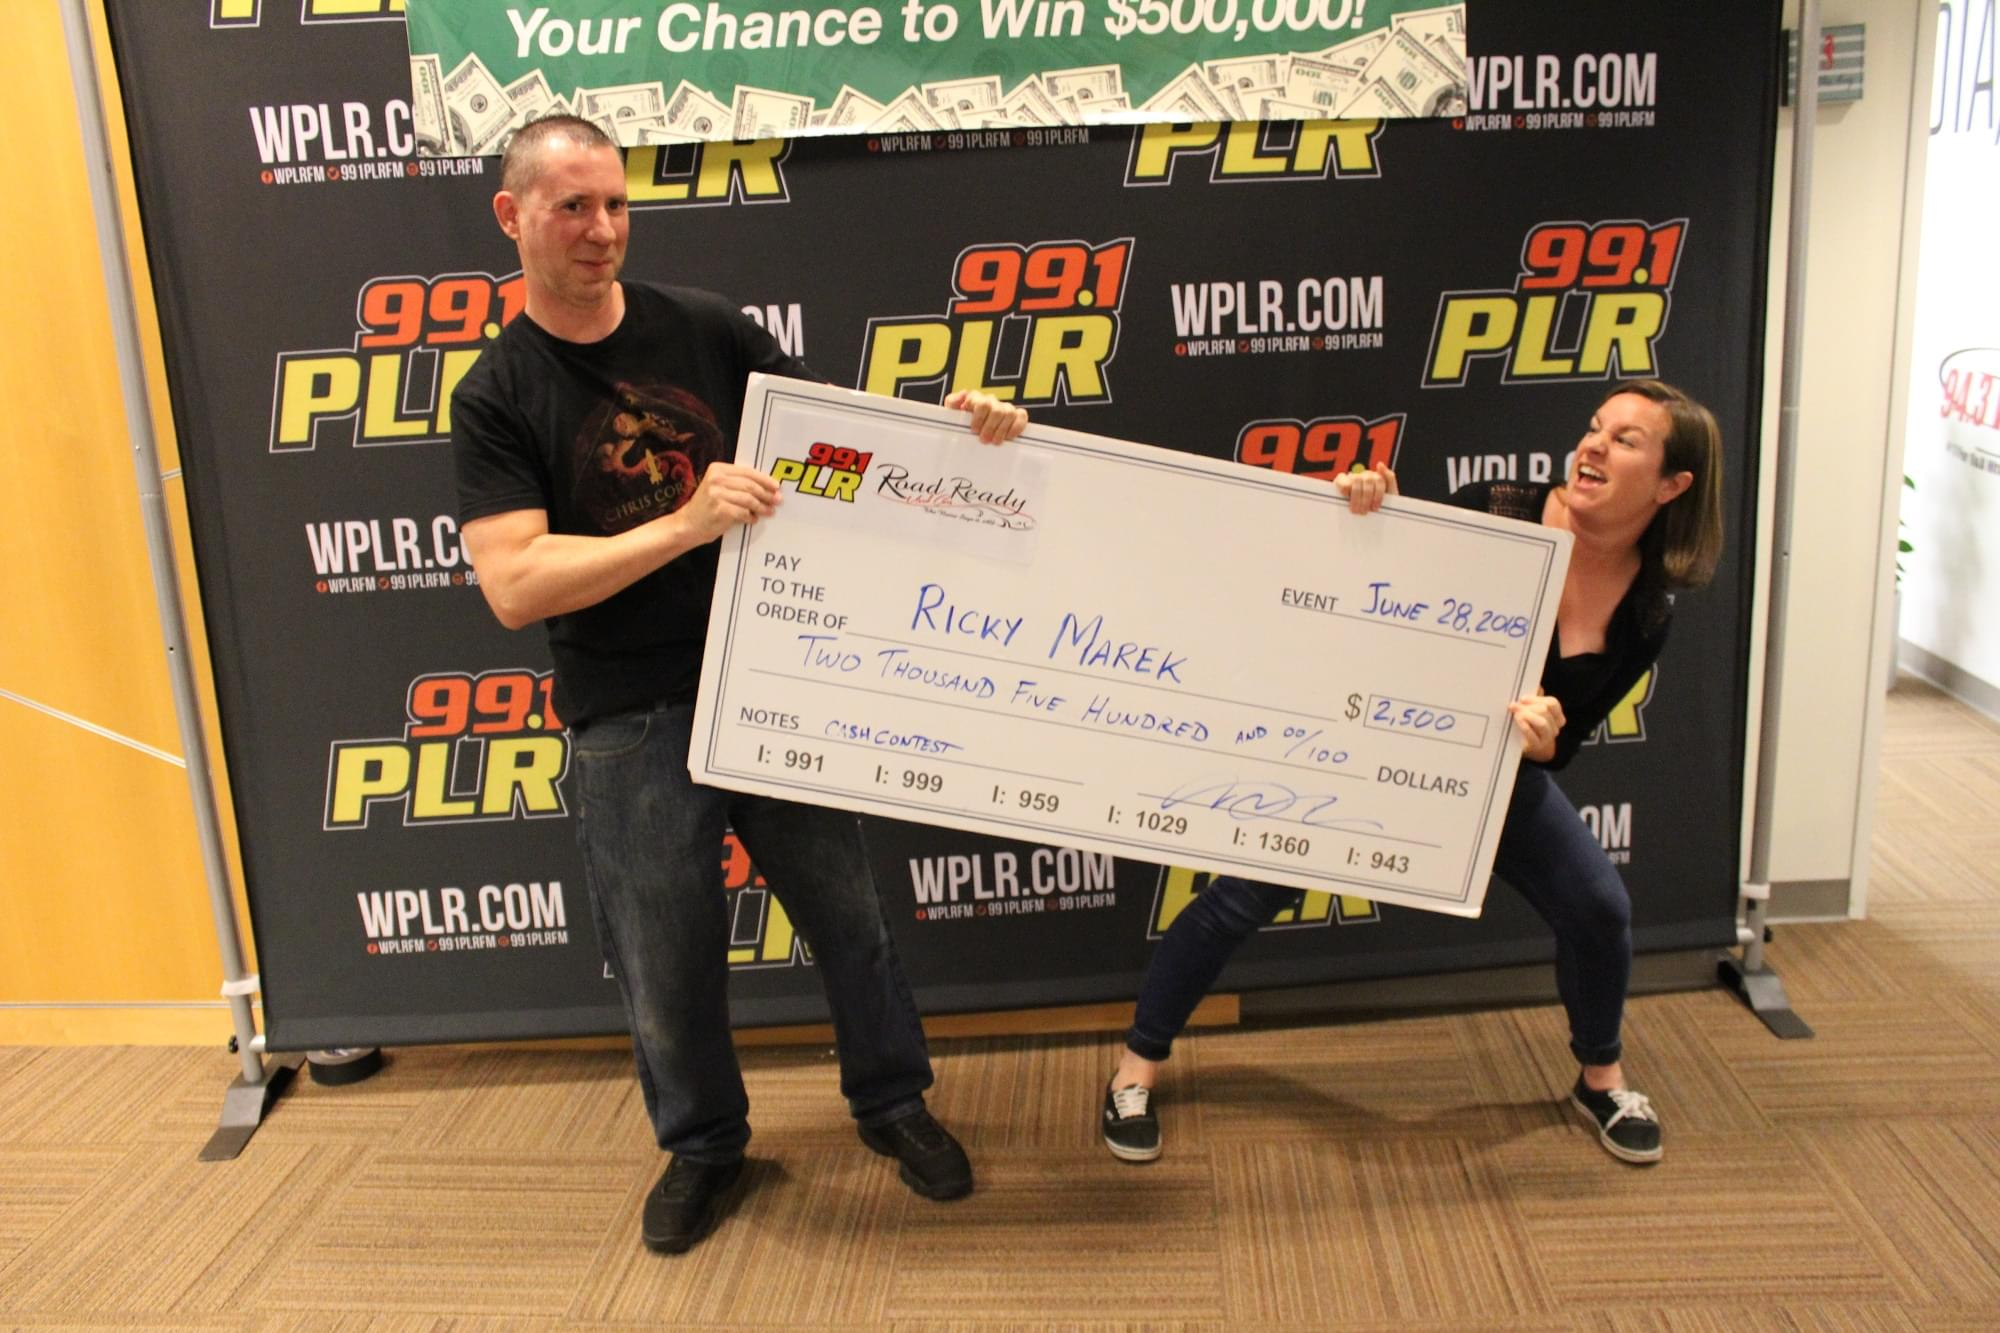 99.1 PLR Road Ready Used Cars $500,000 Cash Cow Grand Prize Winner